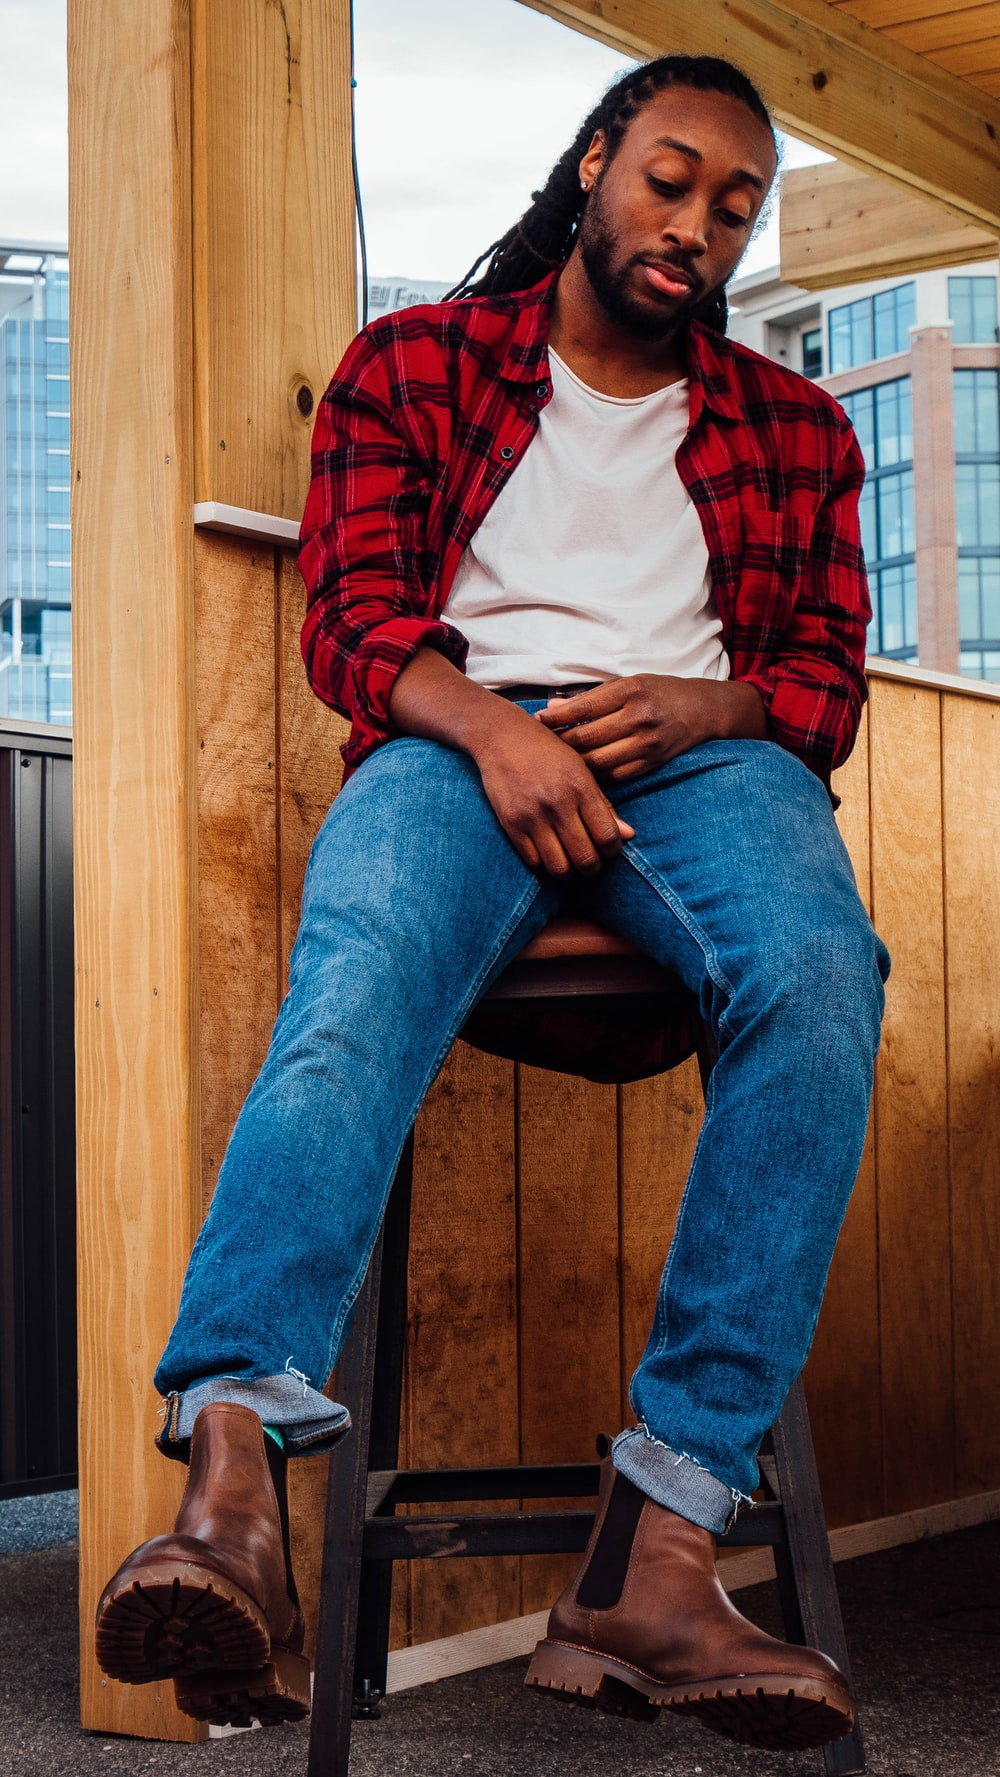 man in red and white plaid dress shirt and blue denim jeans sitting on brown wooden